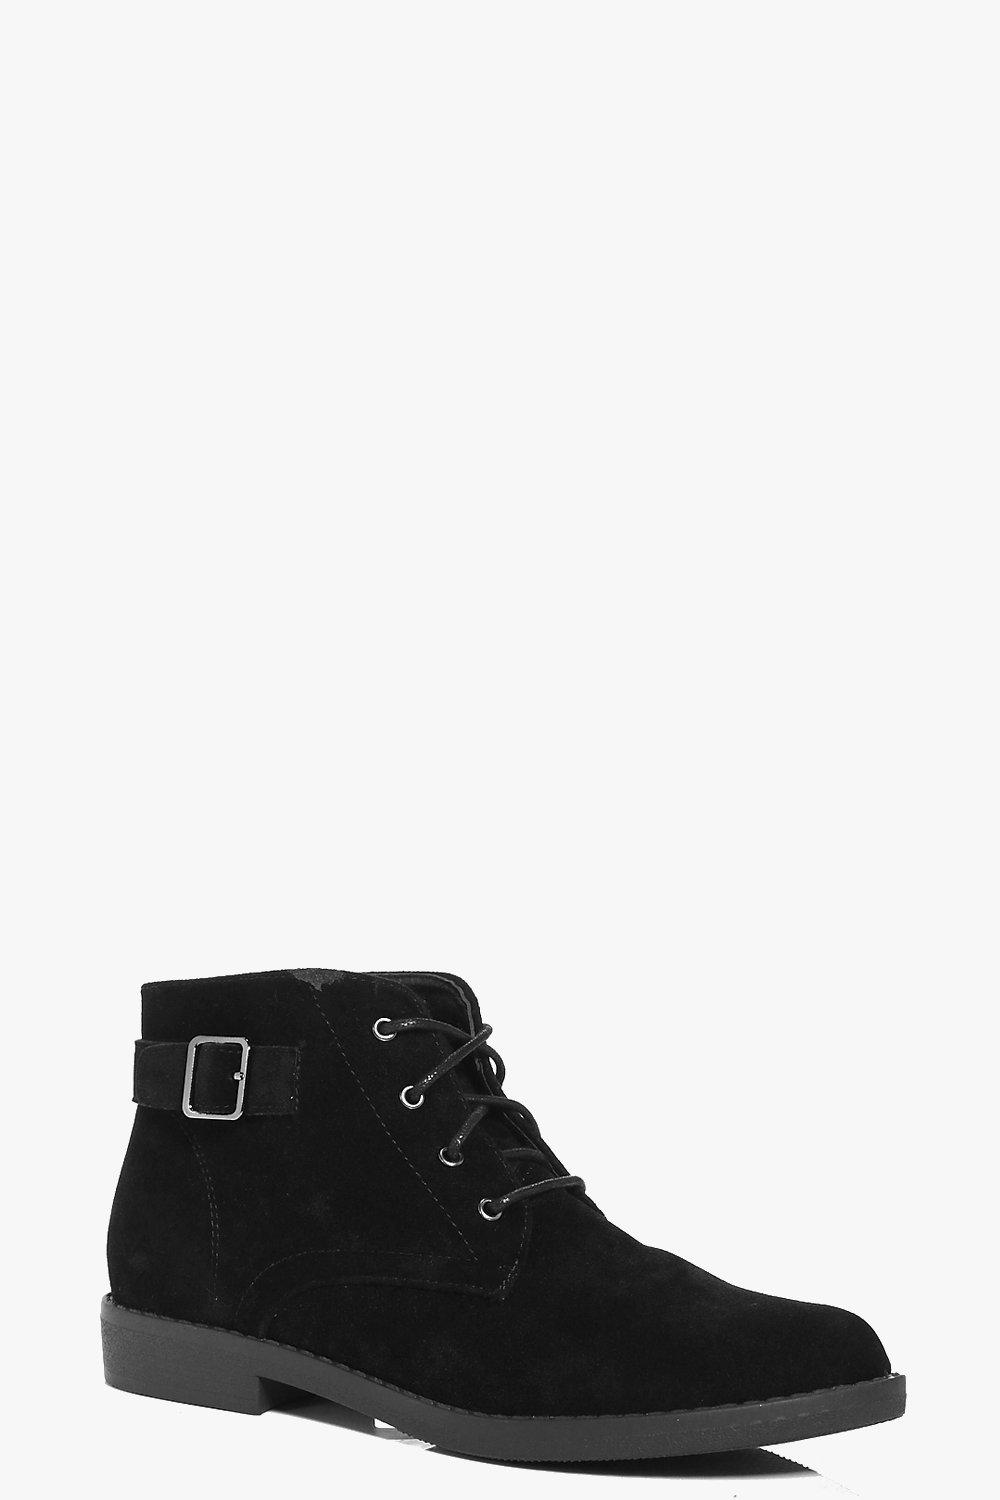 Olivia Lace Up Chelsea Boots